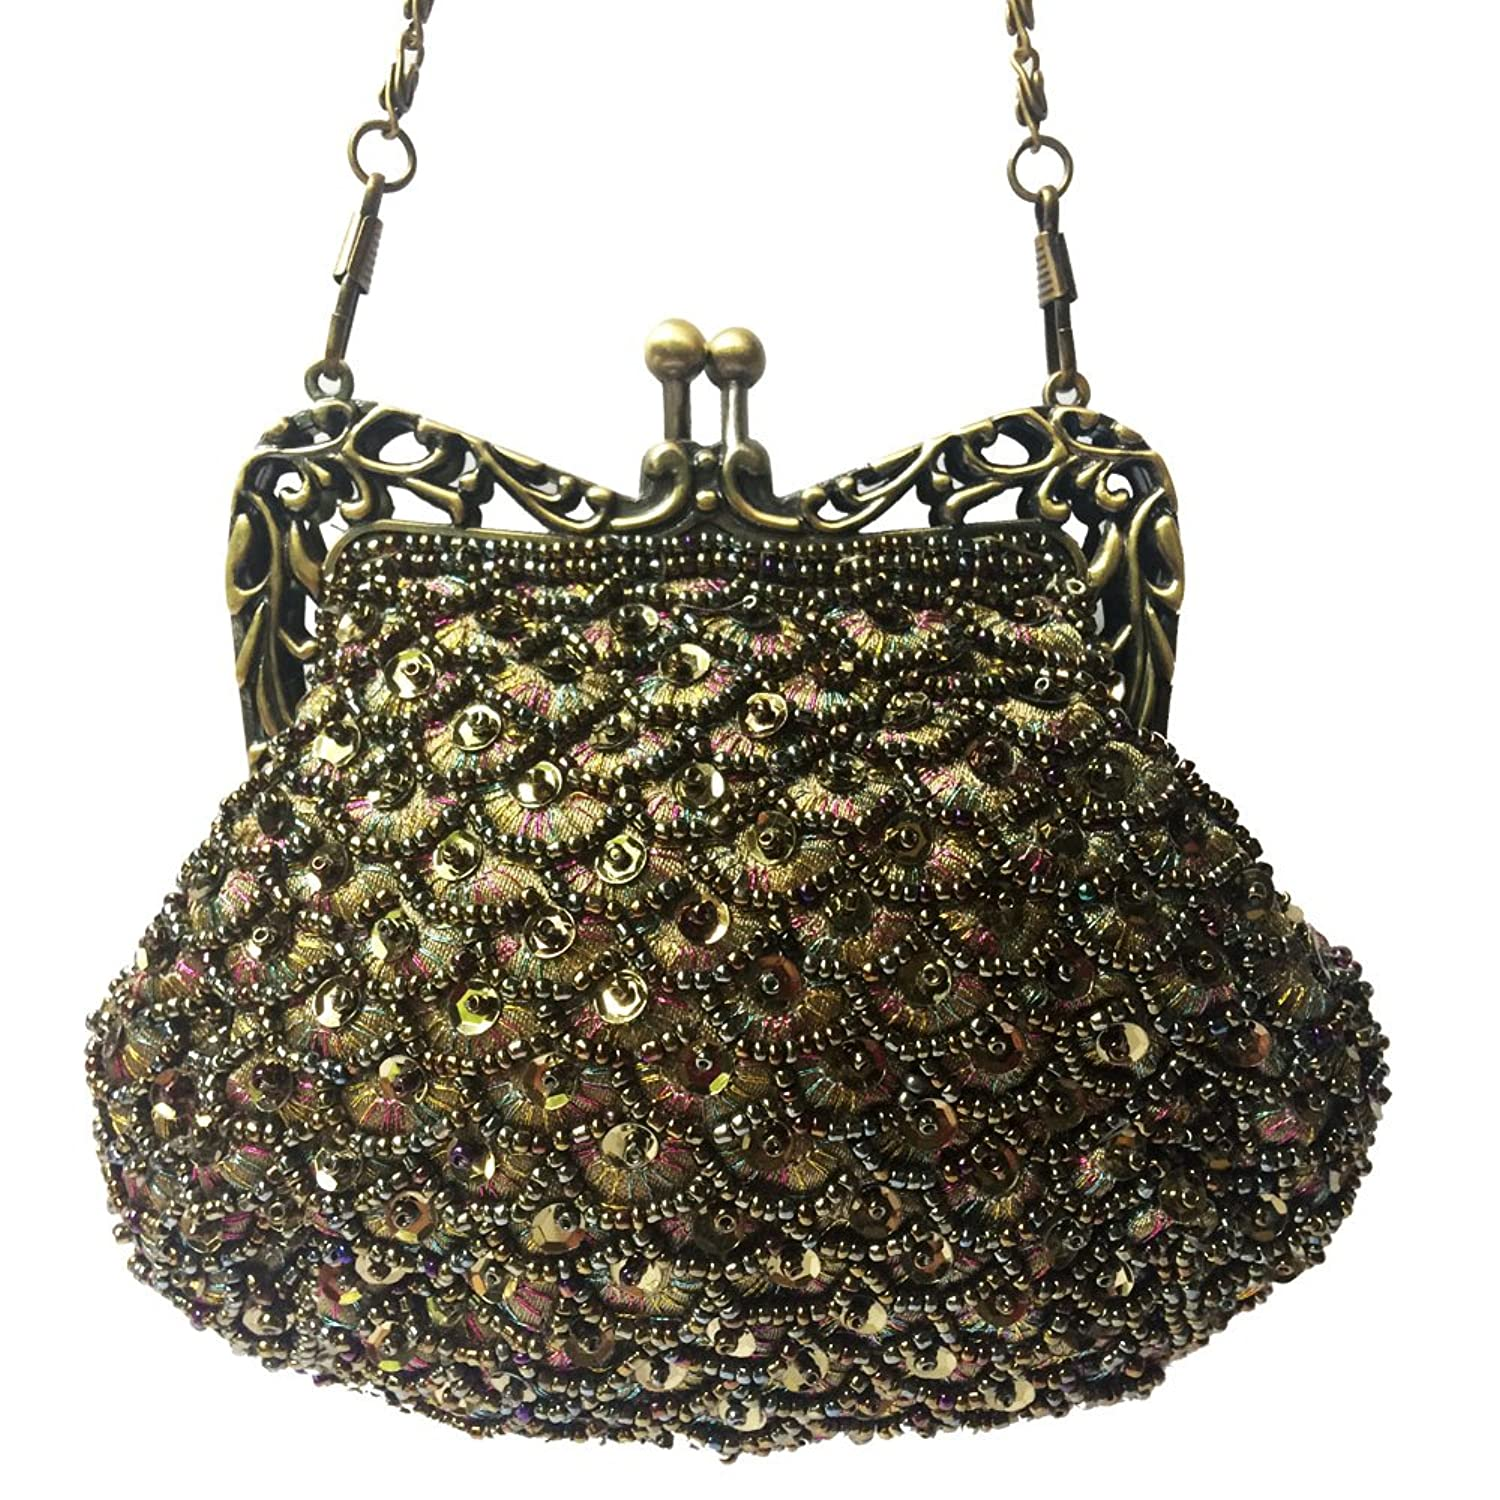 1920s Style Purses, Flapper Bags, Handbags Great Gatsby Style Fully Beaded Vintage Evening Bag Party Clutch Small Coin Purse (olive) $19.97 AT vintagedancer.com